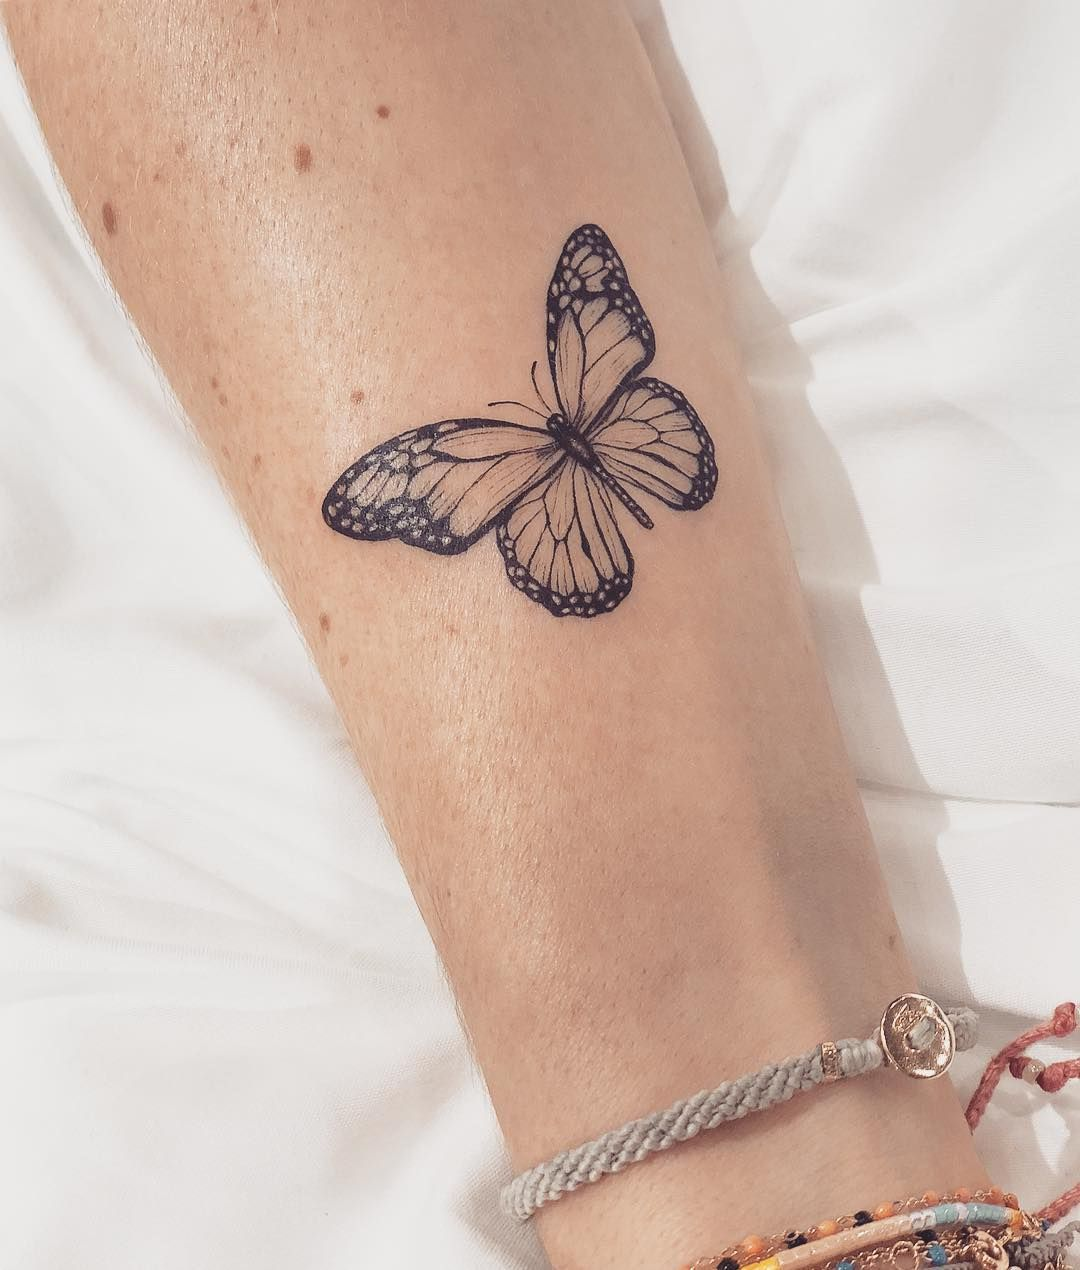 Butterfly Tattoo Is One Of The Most Popular Tattoo Ideas Butterfly Tattoos Are Becoming More An Butterfly Tattoos For Women Tattoos For Women Butterfly Tattoo